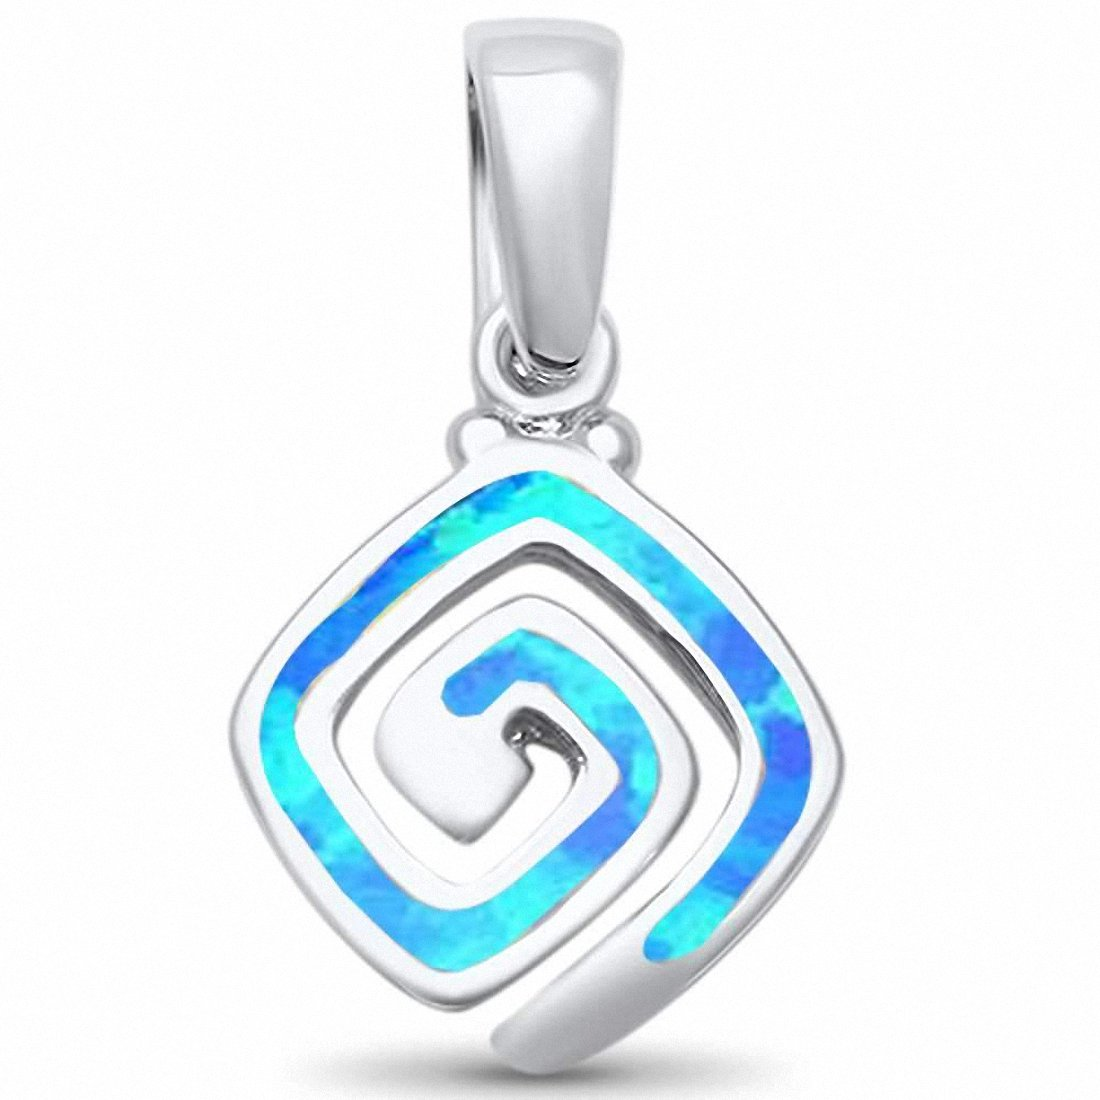 Square Swirl Spiral Pendant 925 Sterling Silver Created Opal Choose Color